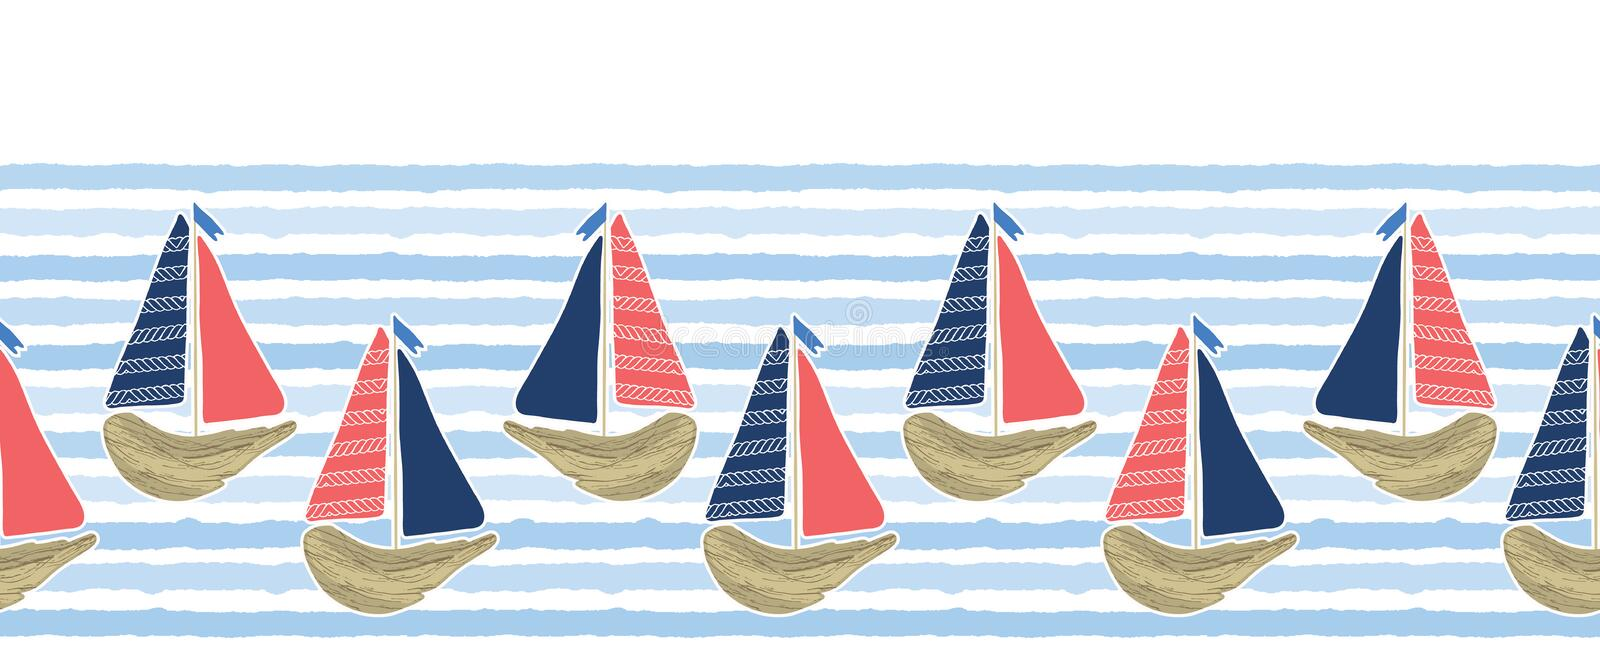 Cute driftwood sailboat on the blue ocean sea border pattern. Marine water stripes seamless vector background. Nautical sailing stock illustration